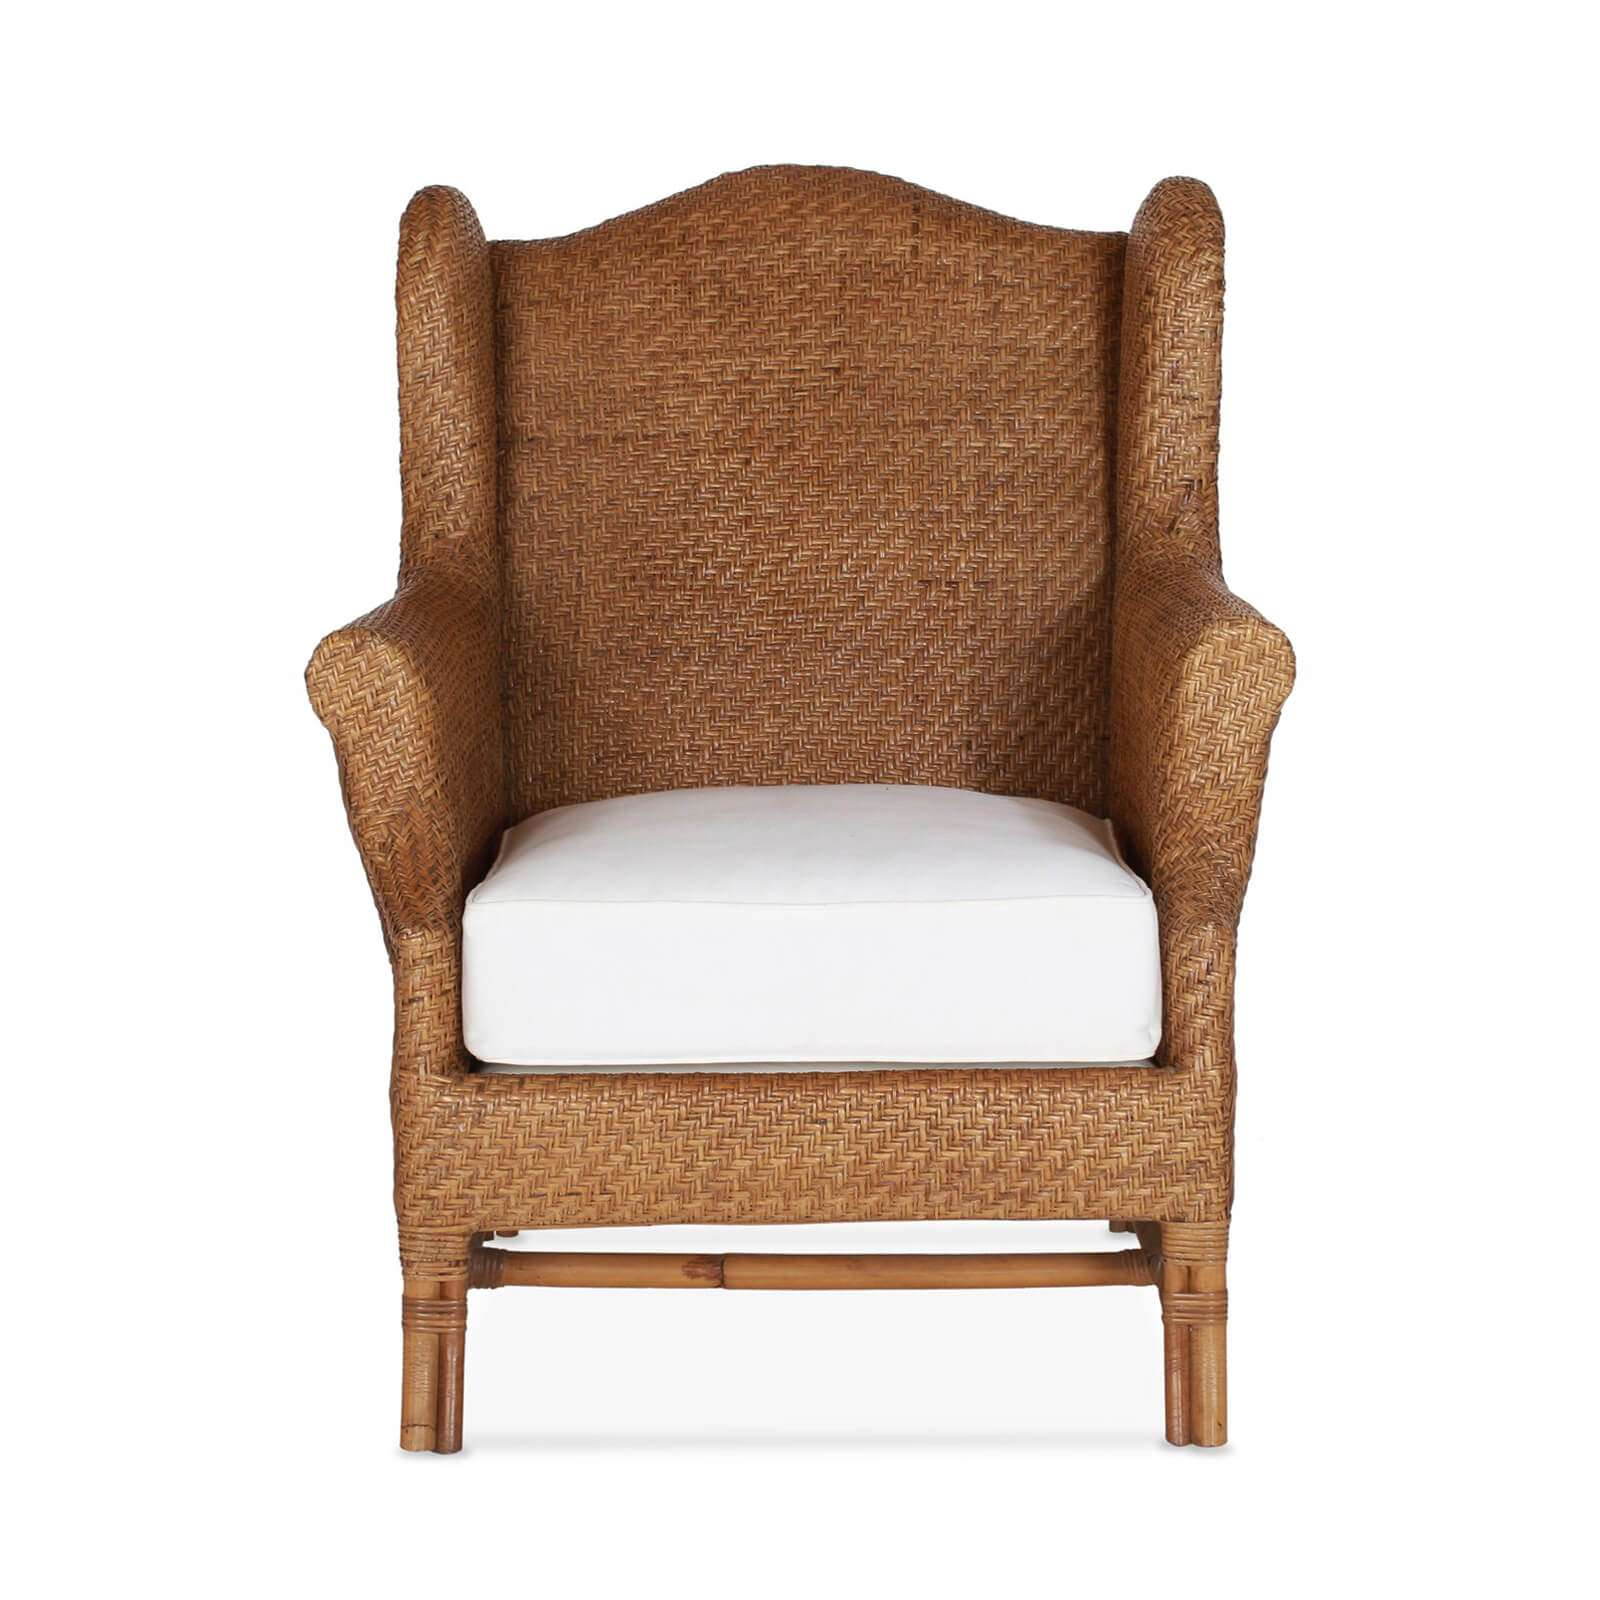 SAVANNA WING CHAIR 44 - STUART MEMBERY HOME COLLECTION